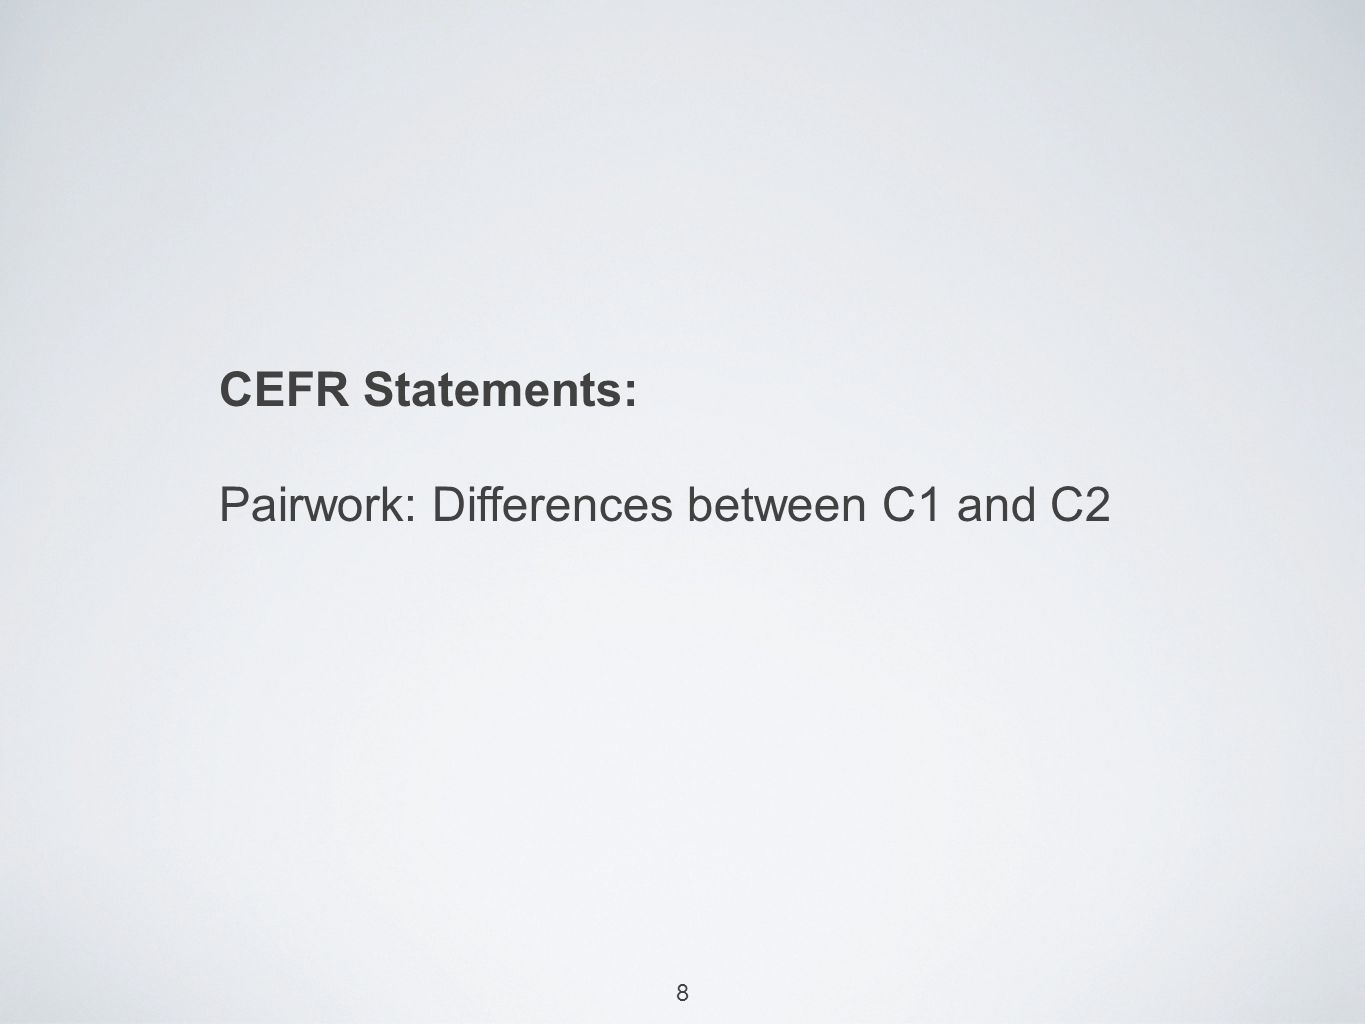 8 CEFR Statements: Pairwork: Differences between C1 and C2